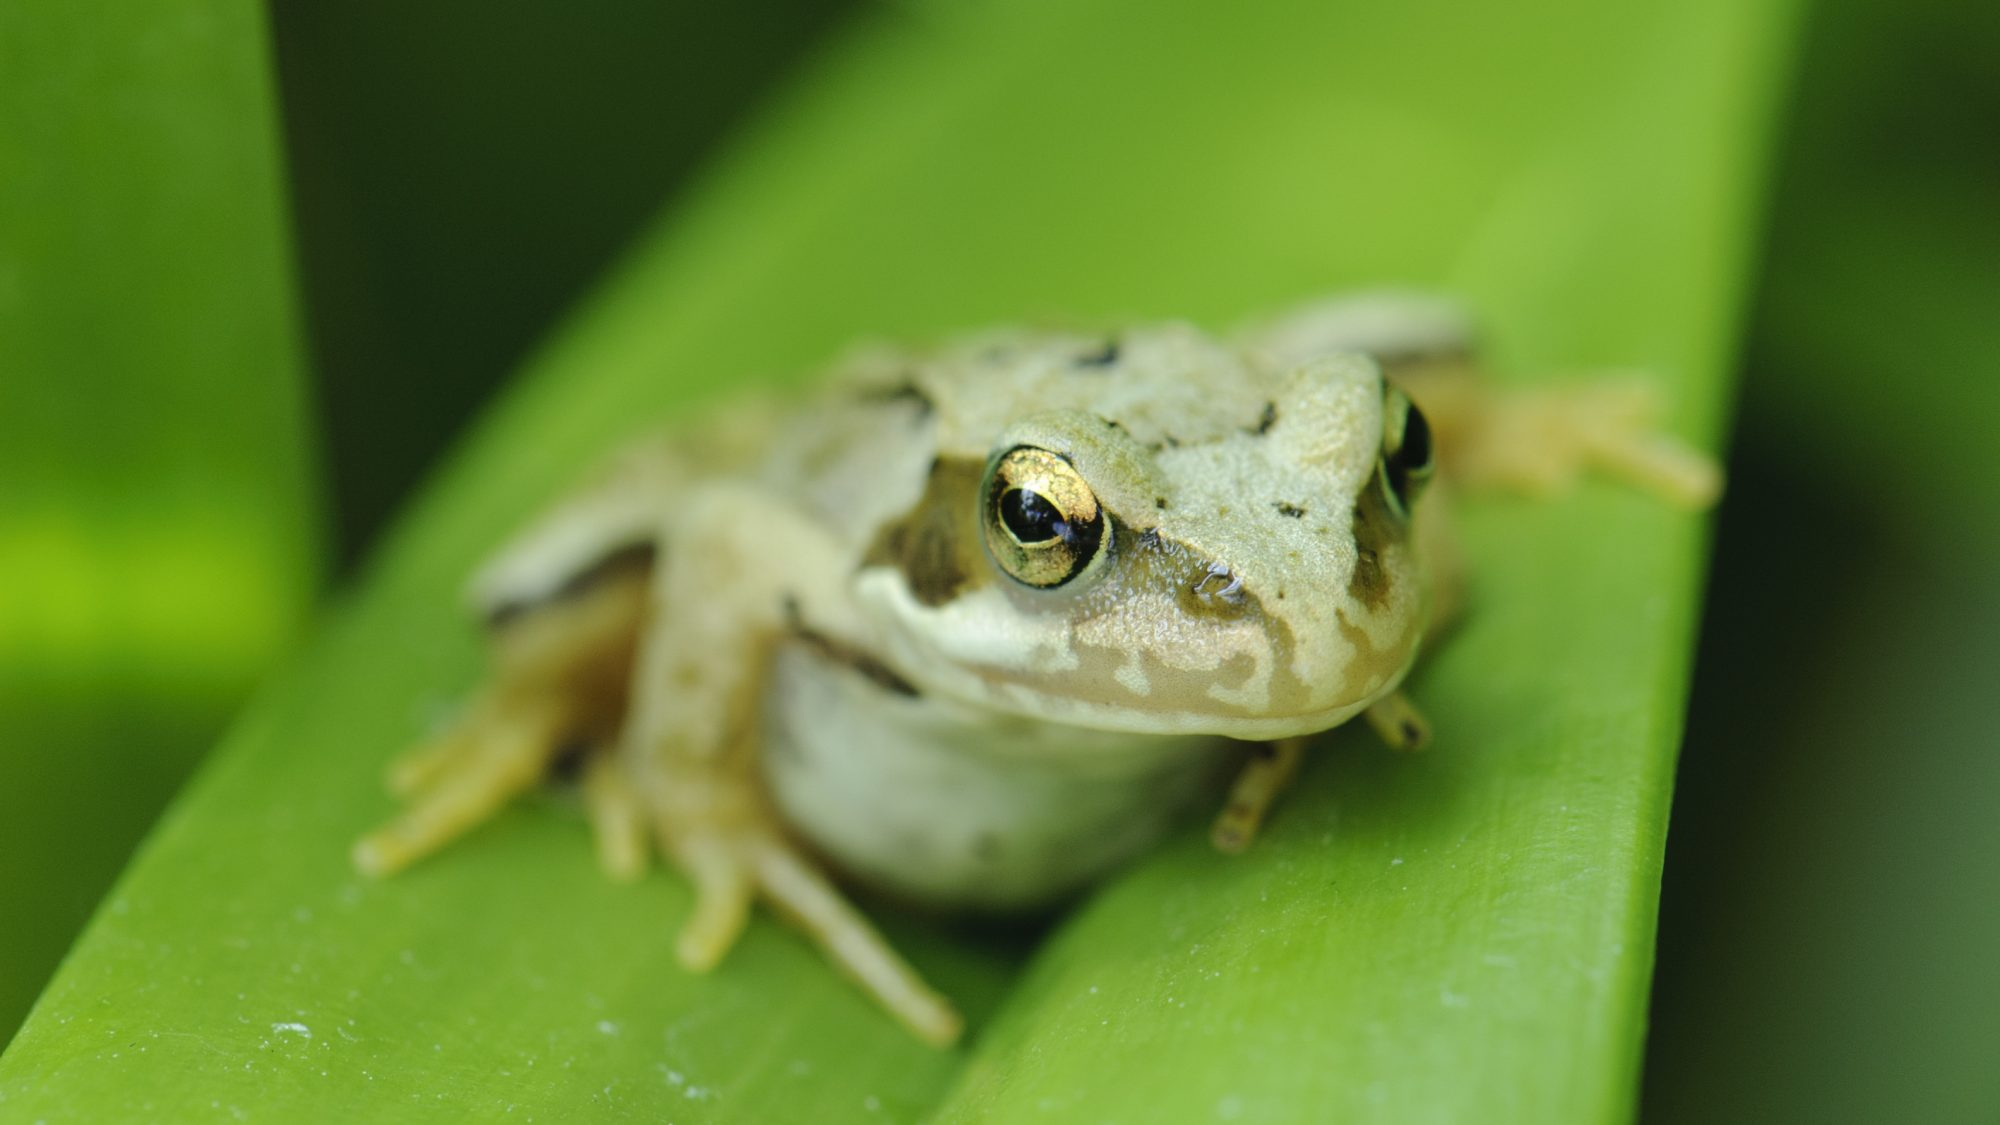 A frog sitting on a leaf.